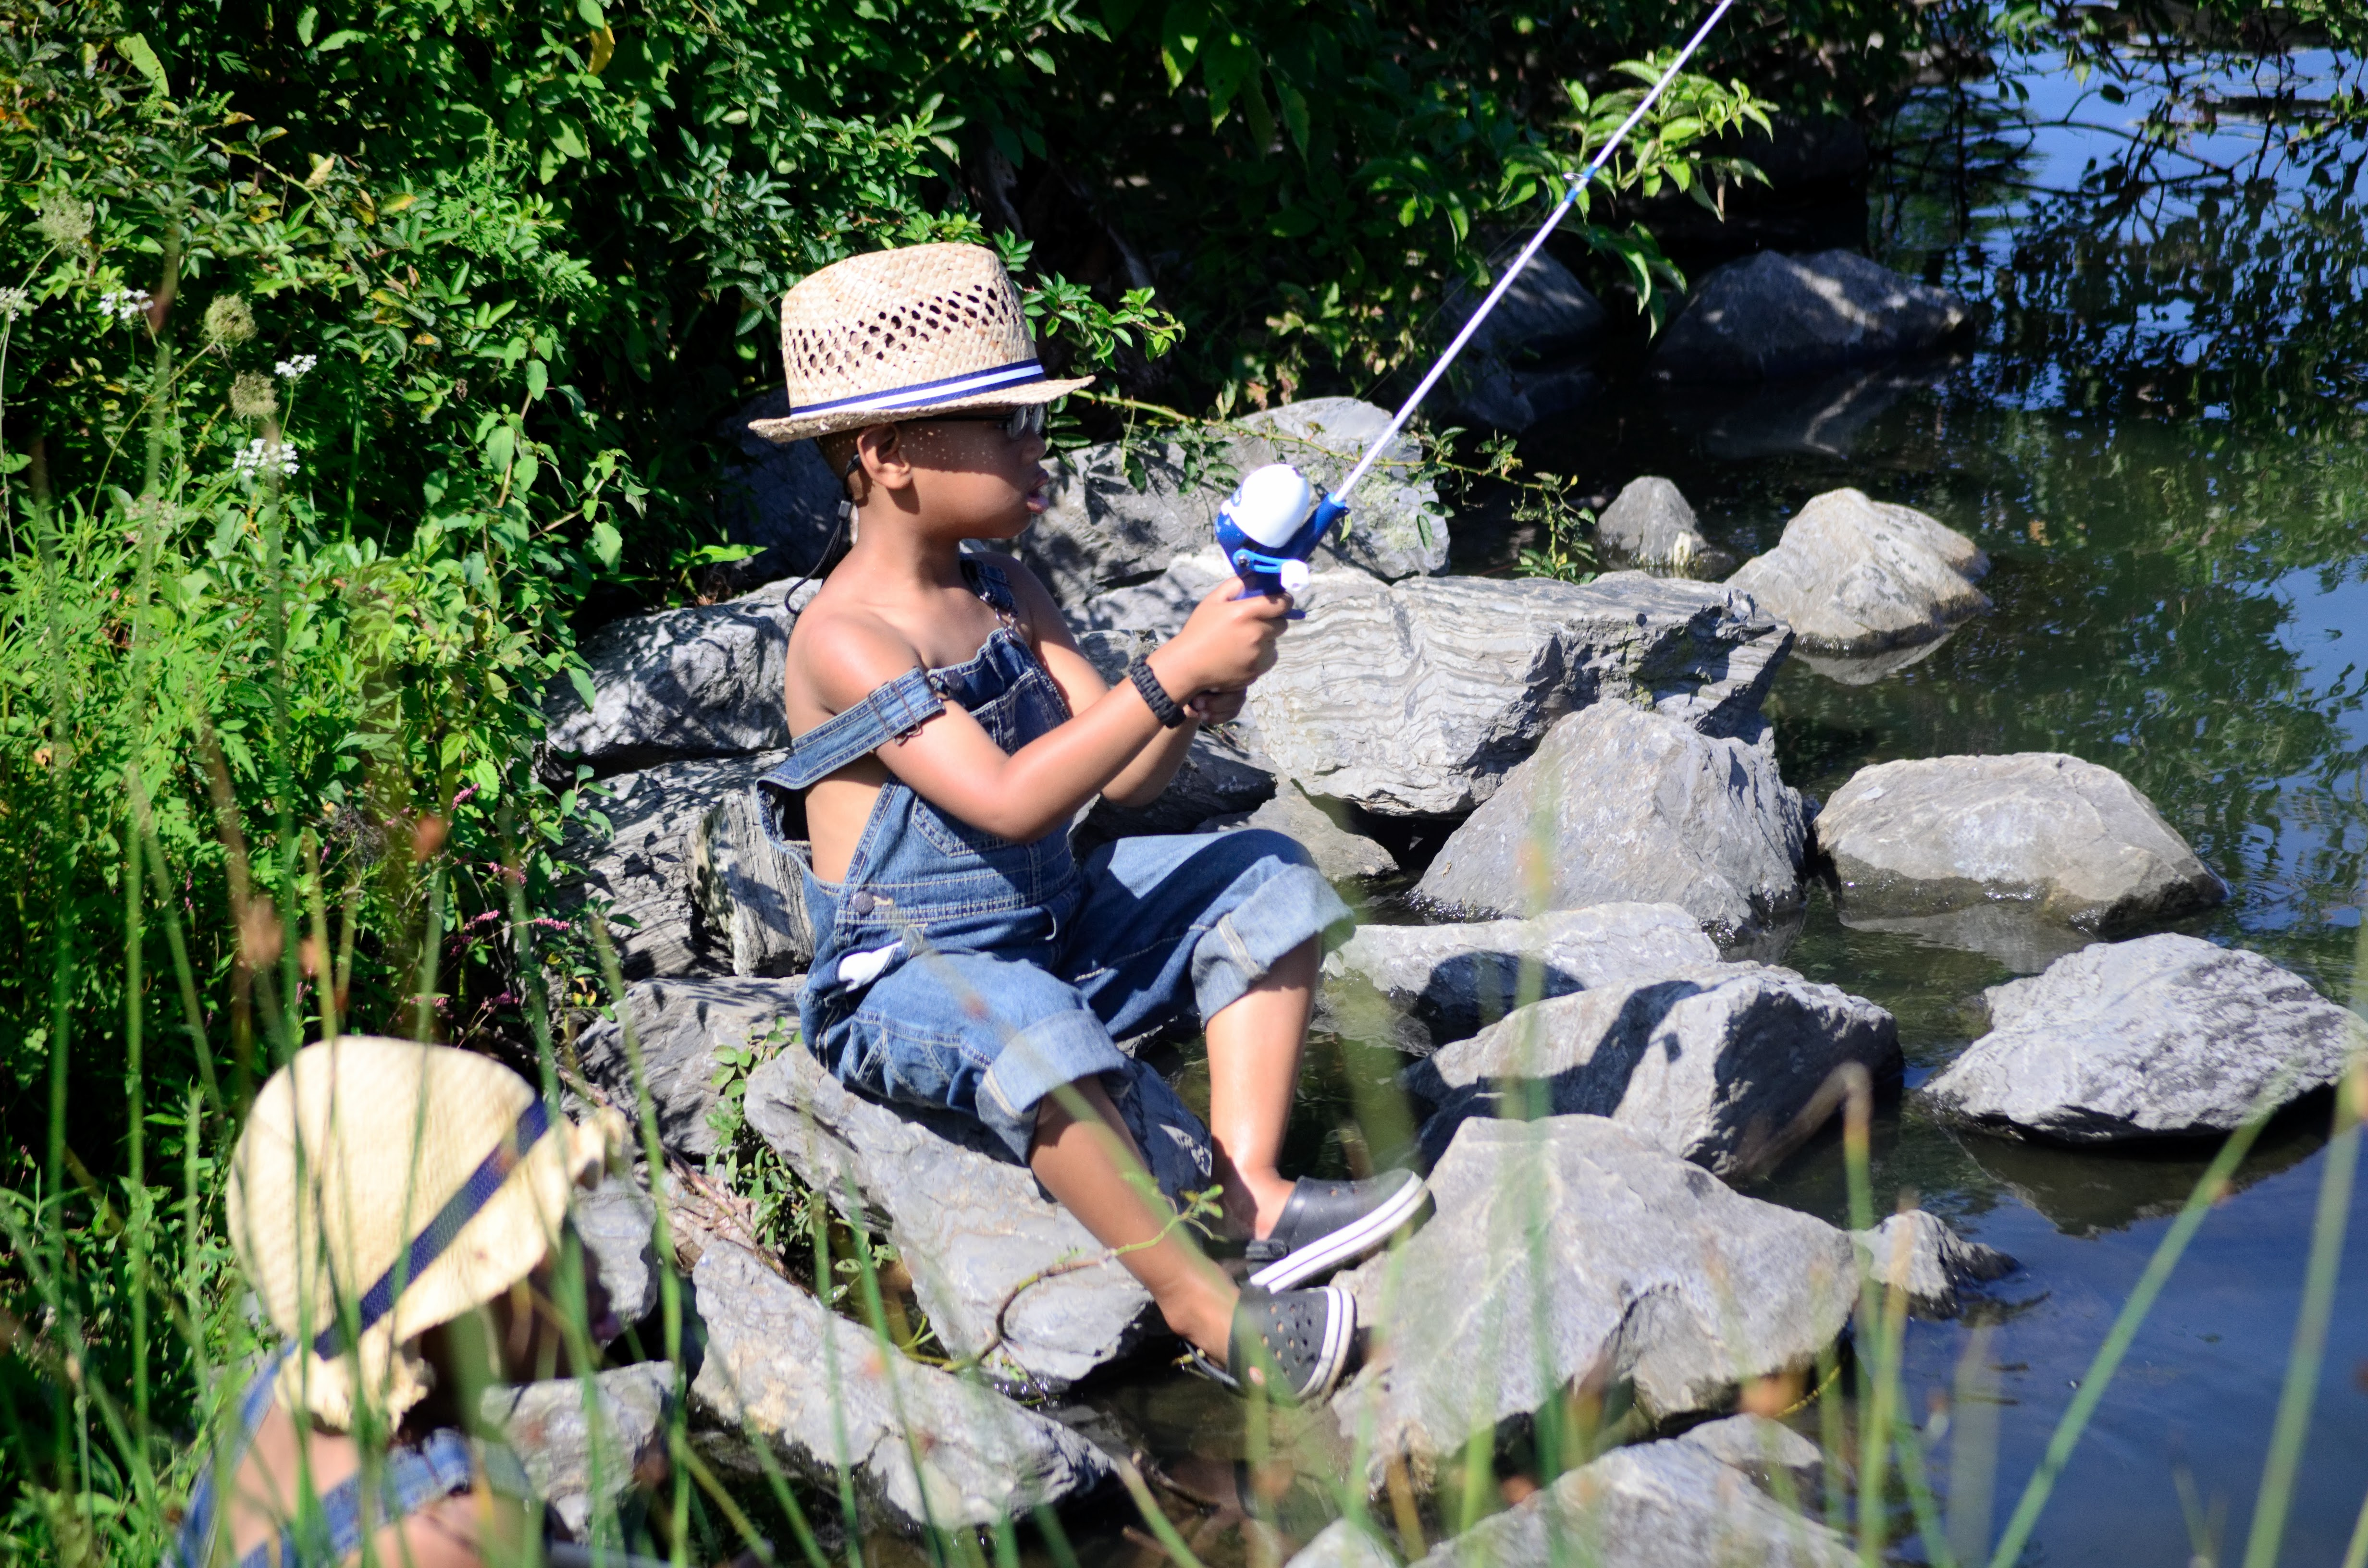 Fishing on the rocks at Lake Centennial in Ellicott City